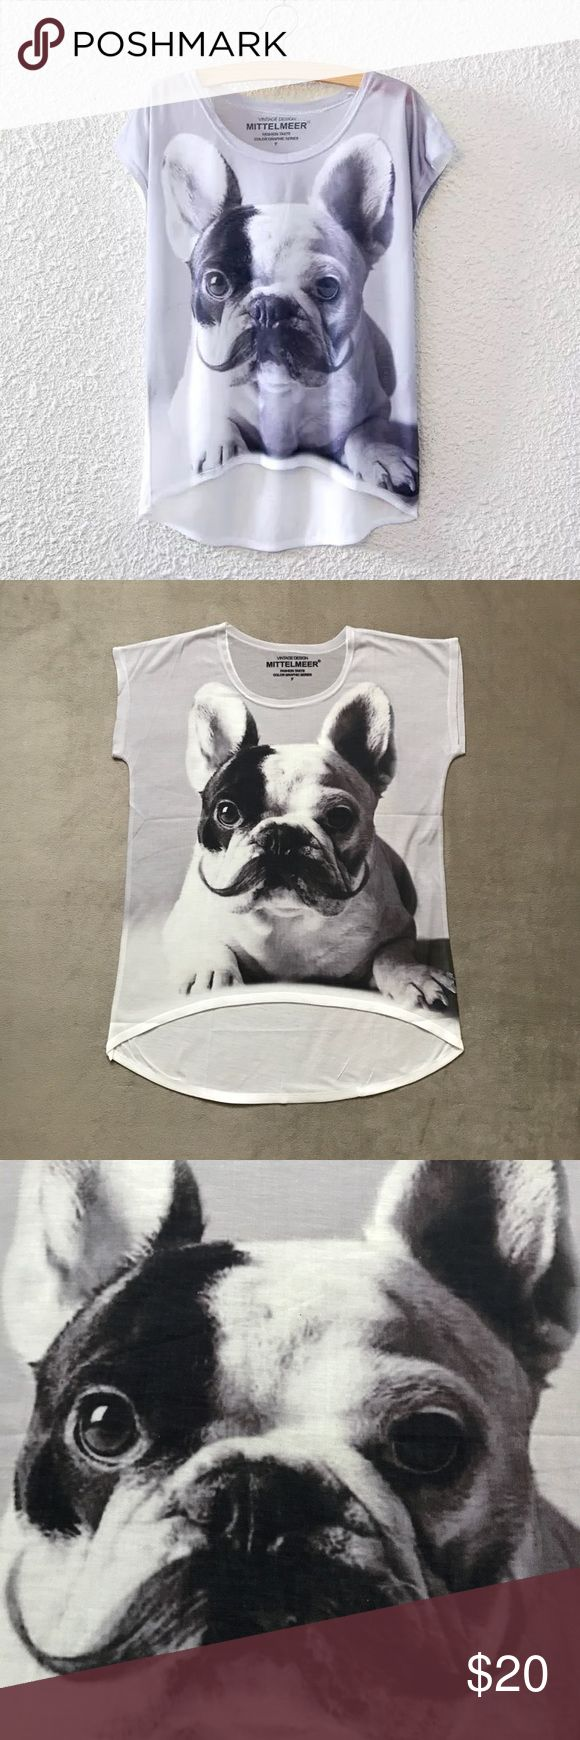 """French Bulldog Mustache T-Shirt This wonderful loose-fitting top is slightly sheer and stretchy.  Use it as a beach coverup or a cute summer top with shorts or jeans.  Comes in one size only.  Measures approximately 20"""" from pit to pit lying flat.  The top is longer in the back - please  picture for measurement.  Price is firm unless bundled. Tops Tees - Short Sleeve"""